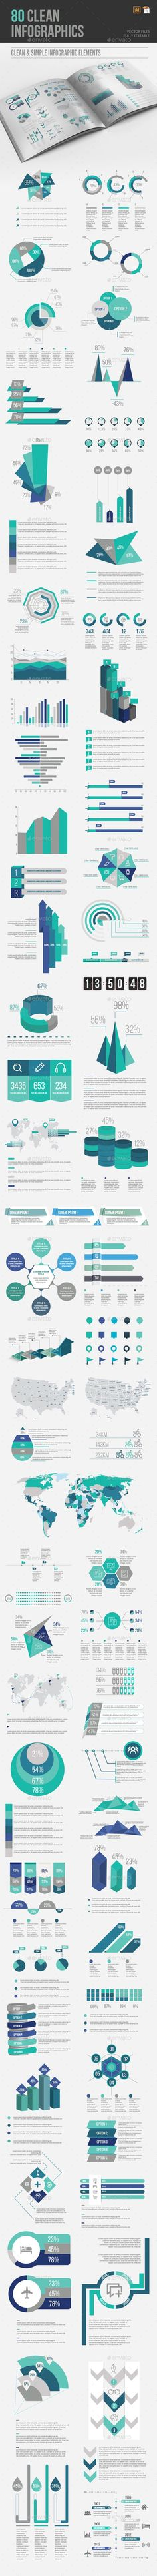 Infographic Element Templates Vector EPS, AI Illustrator. Download here: graphicriver.net/...